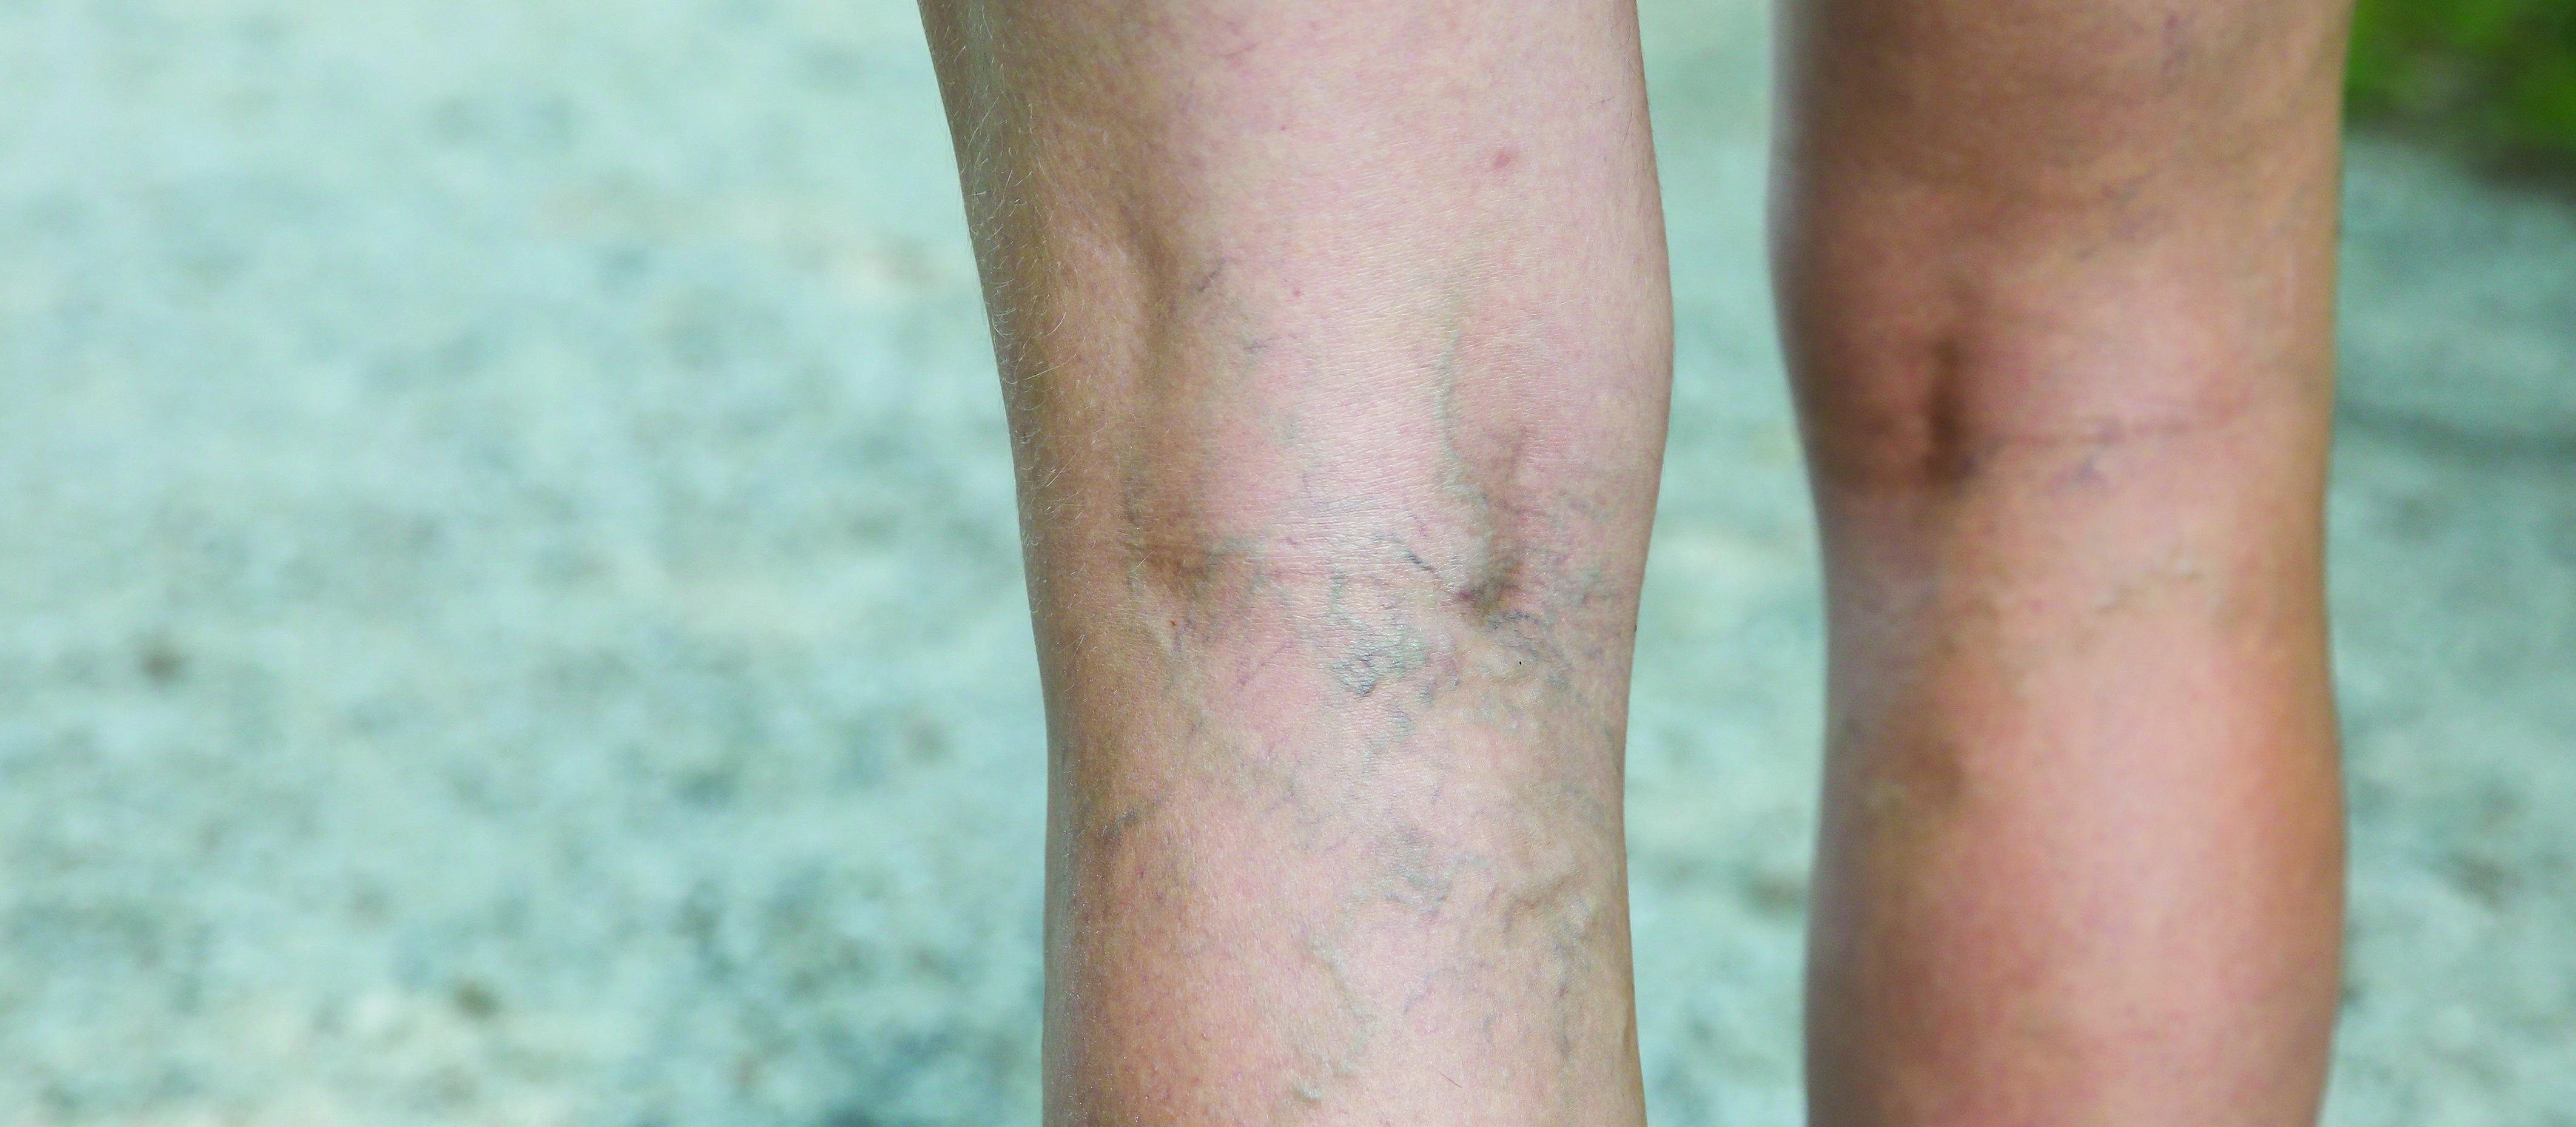 understanding varicose veins; what are the new treatment options